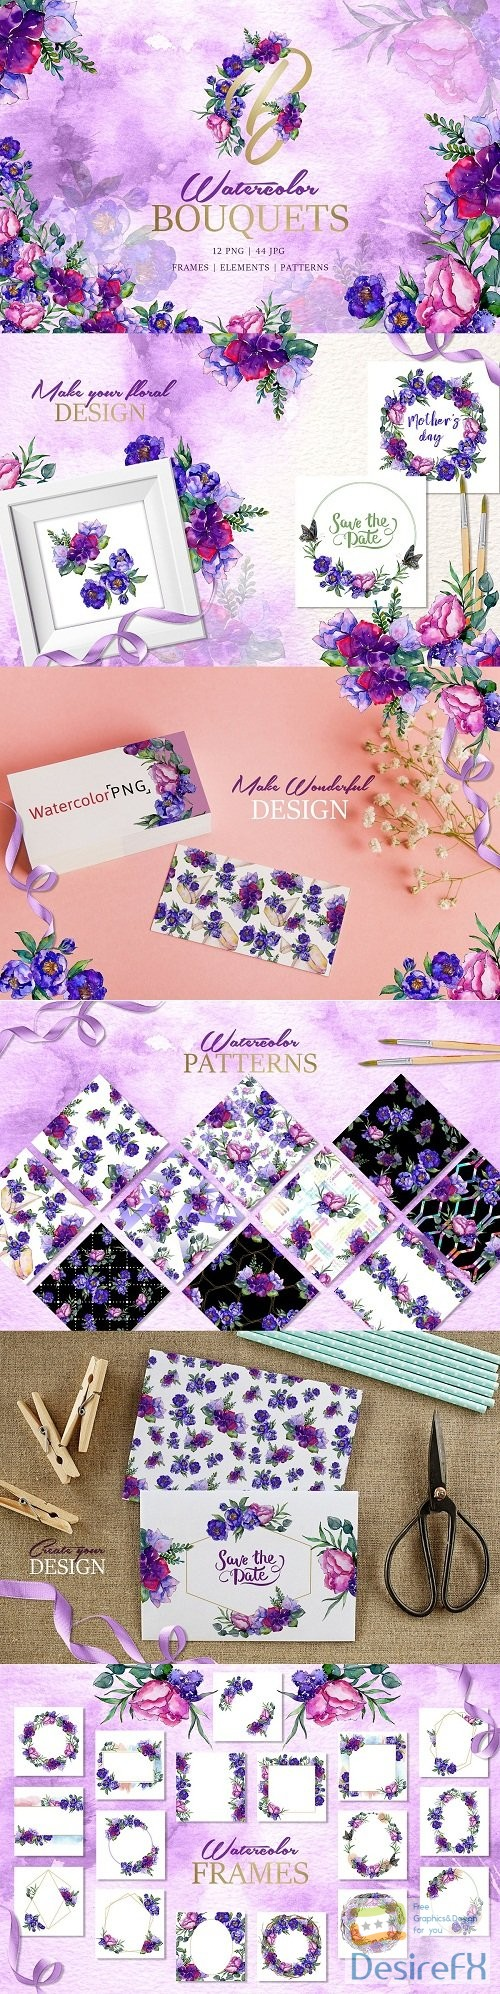 Bouquets of purple flowers - 3451531